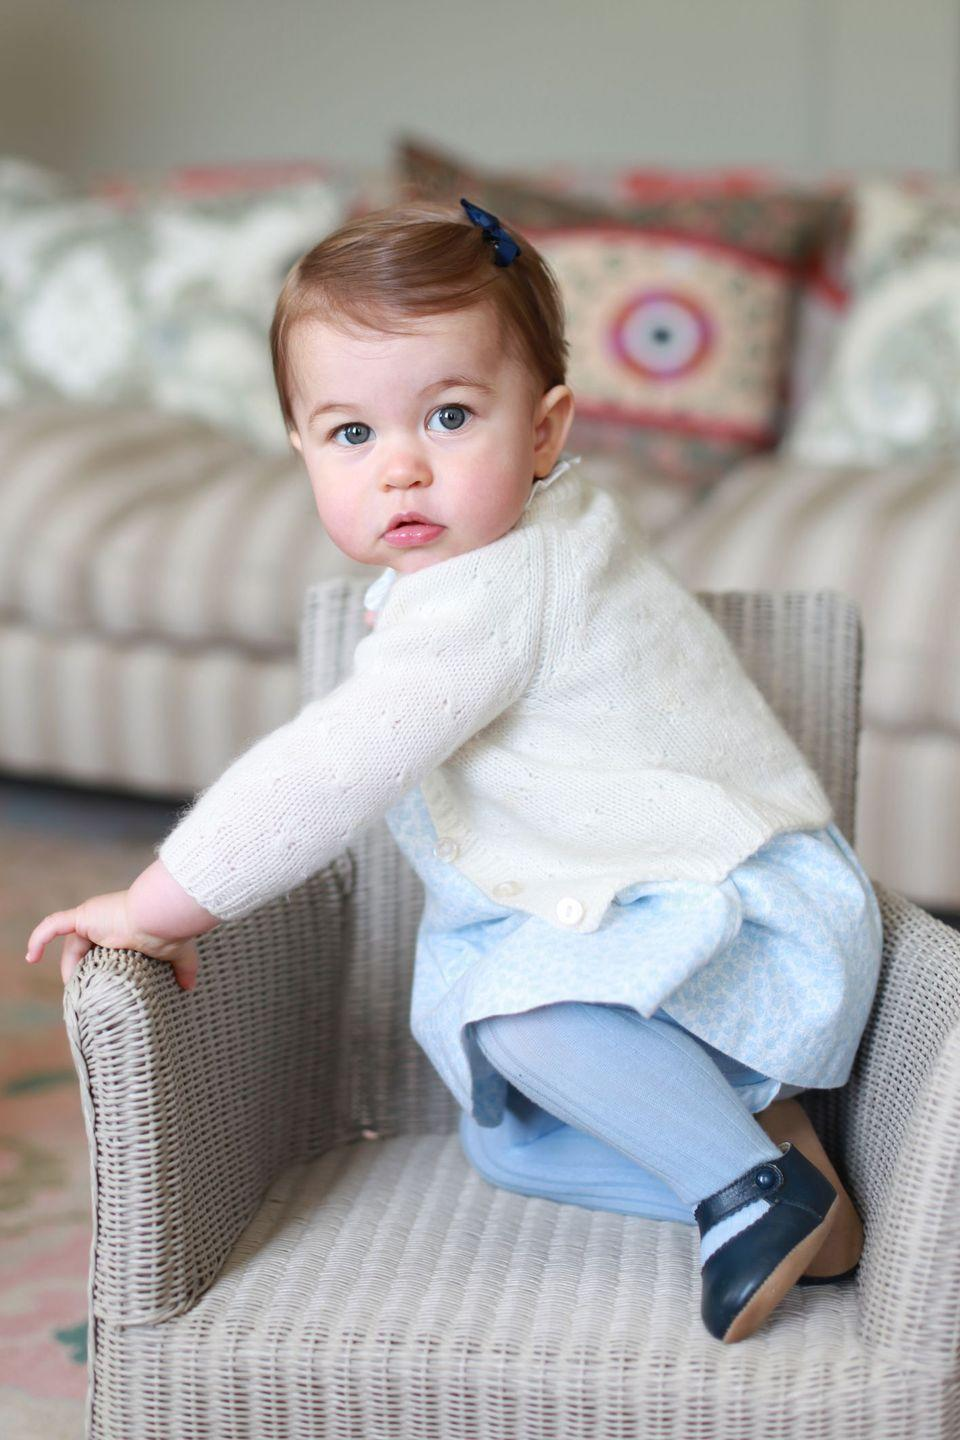 "<p>For Princess Charlotte's first birthday, the Duchess took a series of portraits of her second child around their family's home, <a href=""https://www.townandcountrymag.com/style/home-decor/a25646036/anmer-hall-prince-william-kate-middleton-george-louis-princess-charlotte-country-home/"" rel=""nofollow noopener"" target=""_blank"" data-ylk=""slk:Anmer Hall"" class=""link rapid-noclick-resp"">Anmer Hall</a>. </p>"